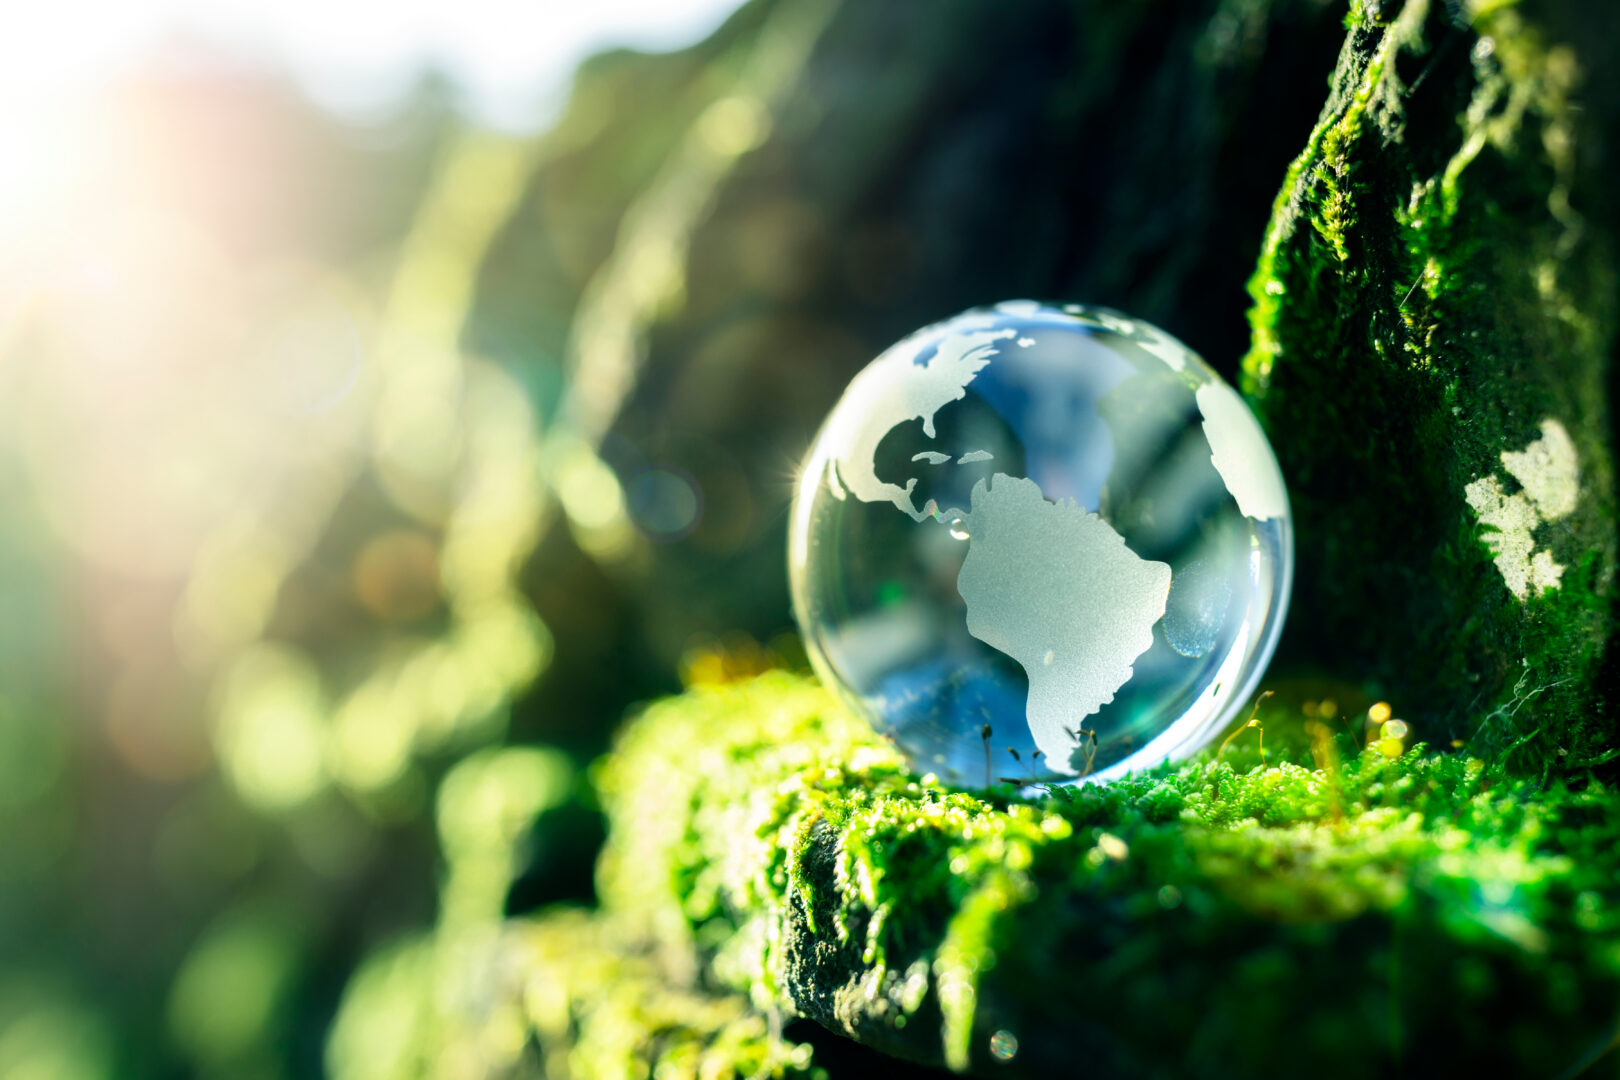 Earth globe on a ledge of greenery in a forest